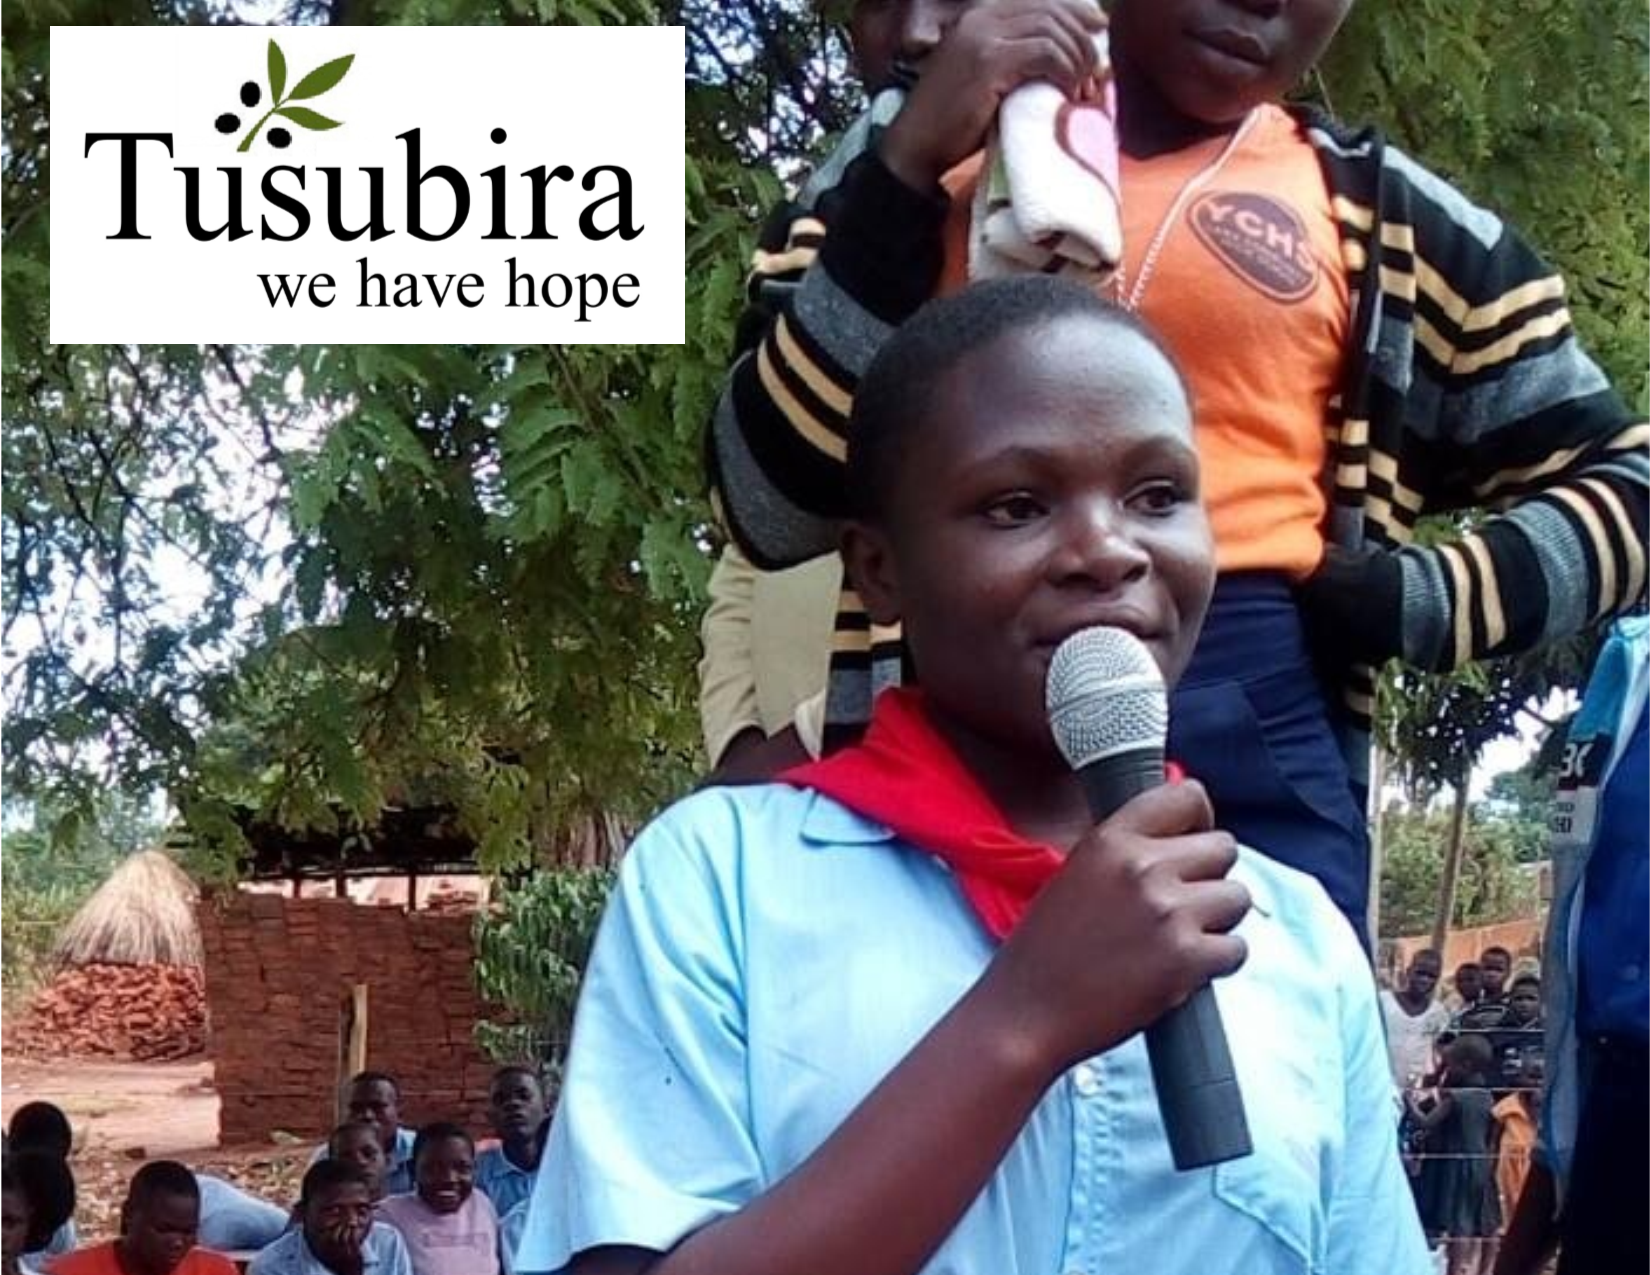 In 2007, a passion to help less privileged children in Uganda gave birth to our 501 (c) 3 organization, Tusubira-We Have Hope. In 2010, that passion was reaffirmed to support secondary education for youth in rural eastern Uganda. Through time, you have stayed with us, followed and supported our work on scholarships and last Sunday, April 15th, you came through for us in a major way by attending our annual social event. The event was focused on sharing with you our secondary school project embodied in YANA Community High School, which is a step higher, providing  secondary education and vocational training to more youth in a rural village of Uganda.    We are proud of the work we do and the support you gave us last Sunday which resulted in raising $1925 in one evening with additional pledges to participate in our  Give Big campaign, sponsored by the Seattle Foundation April 26th through May 9th.   This is a great opportunity to have your donation matched with an additional $5,000 in potential funding. Tusubira-We Have Hope is able to make this mission possible with thanks to the support of our friends, family and colleagues like you. For this we and the children at YANA Community School are eternally grateful.   We recognize your desire to hear more about our programs and the stories of the youth who your funds positively impact.